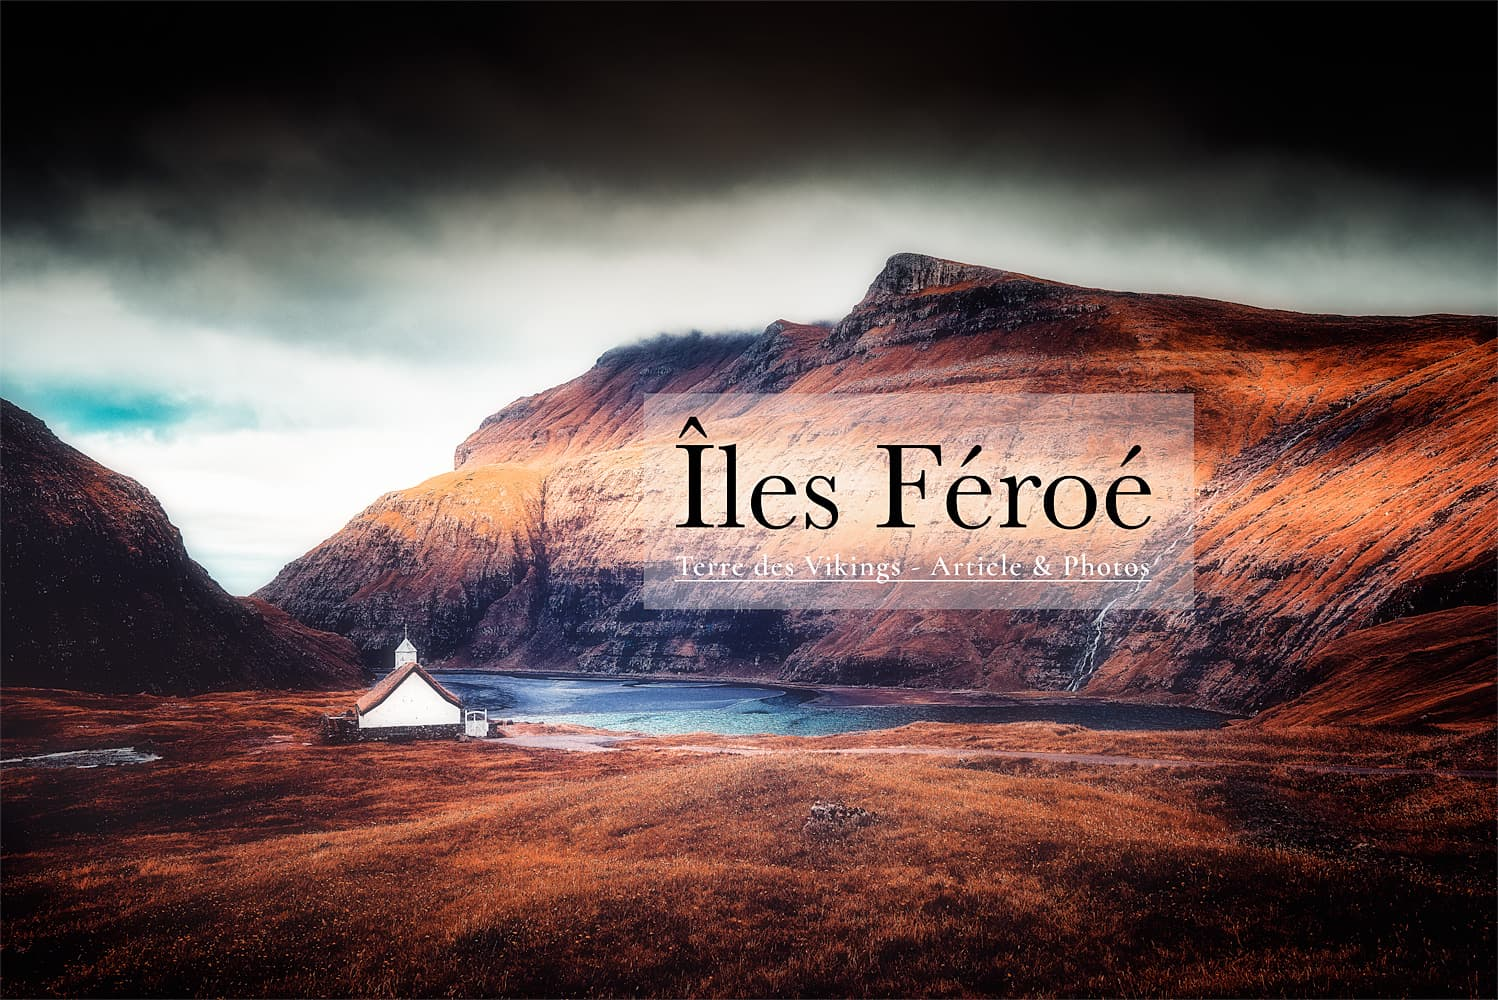 This fall, the house of creed introduces the masterfully crafted viking, a fiery men's fragrance that bottles the fearless spirit of boundless exploration for the modern man who goes against the grain. Iles Feroe Terre Des Vikings Article Et Photos De Cet Archipel Sauvage